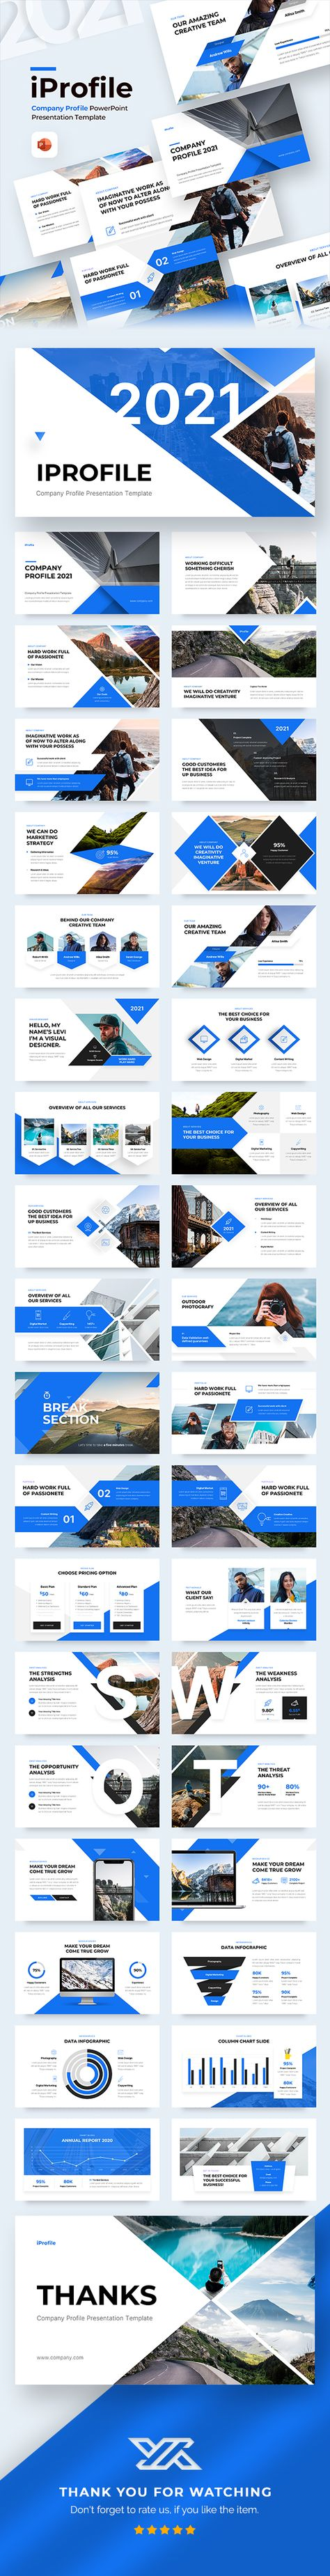 Iprofile - Company Profile PowerPoint Presentation Template